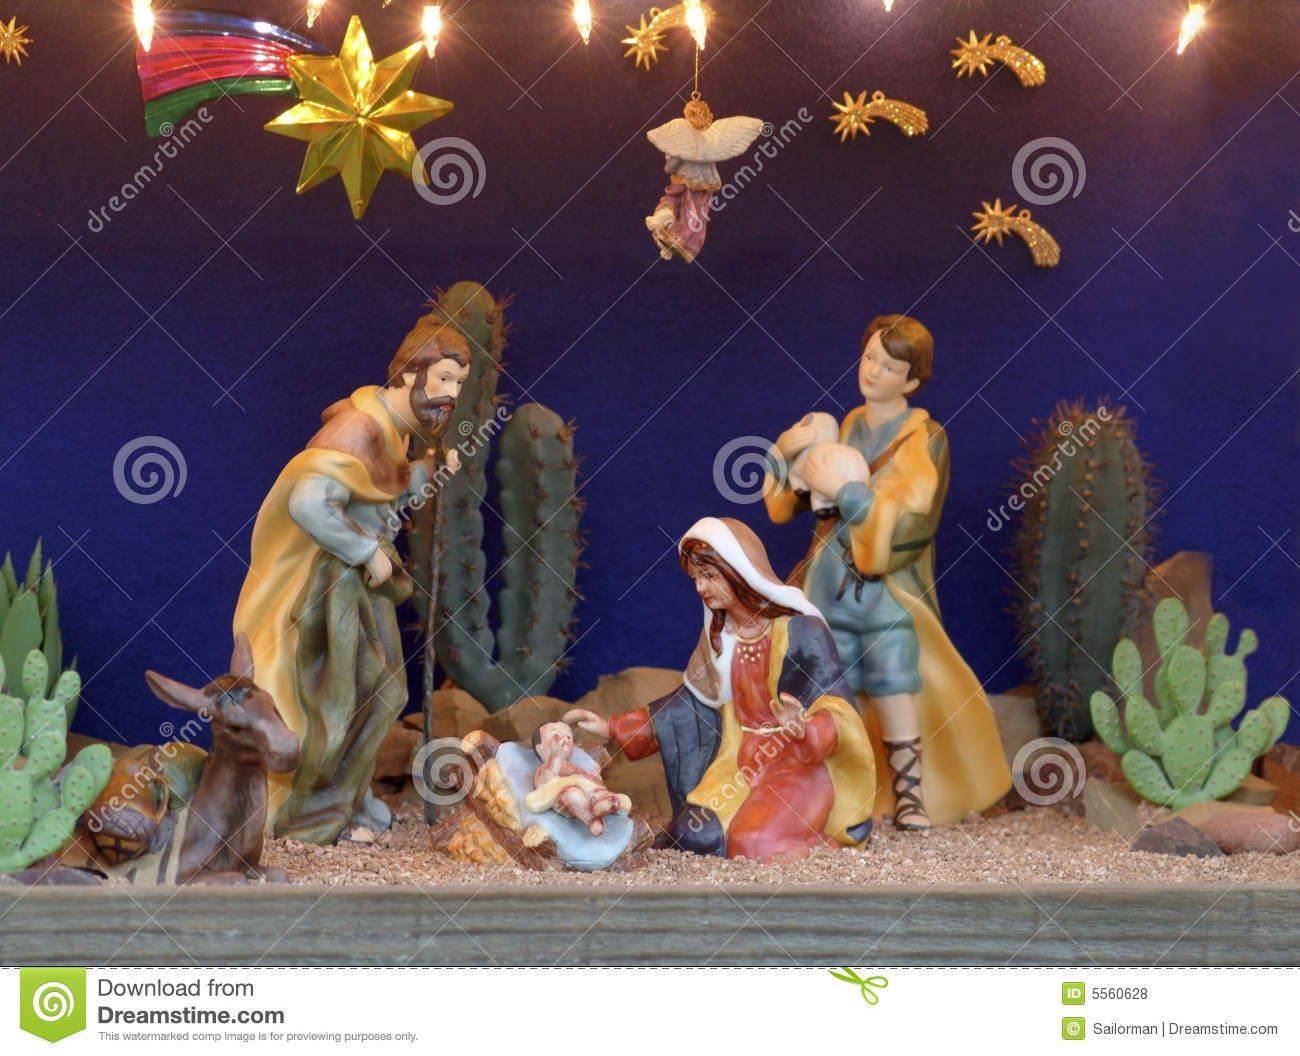 download a christmas manger scene stock photo image of nativity 5560628